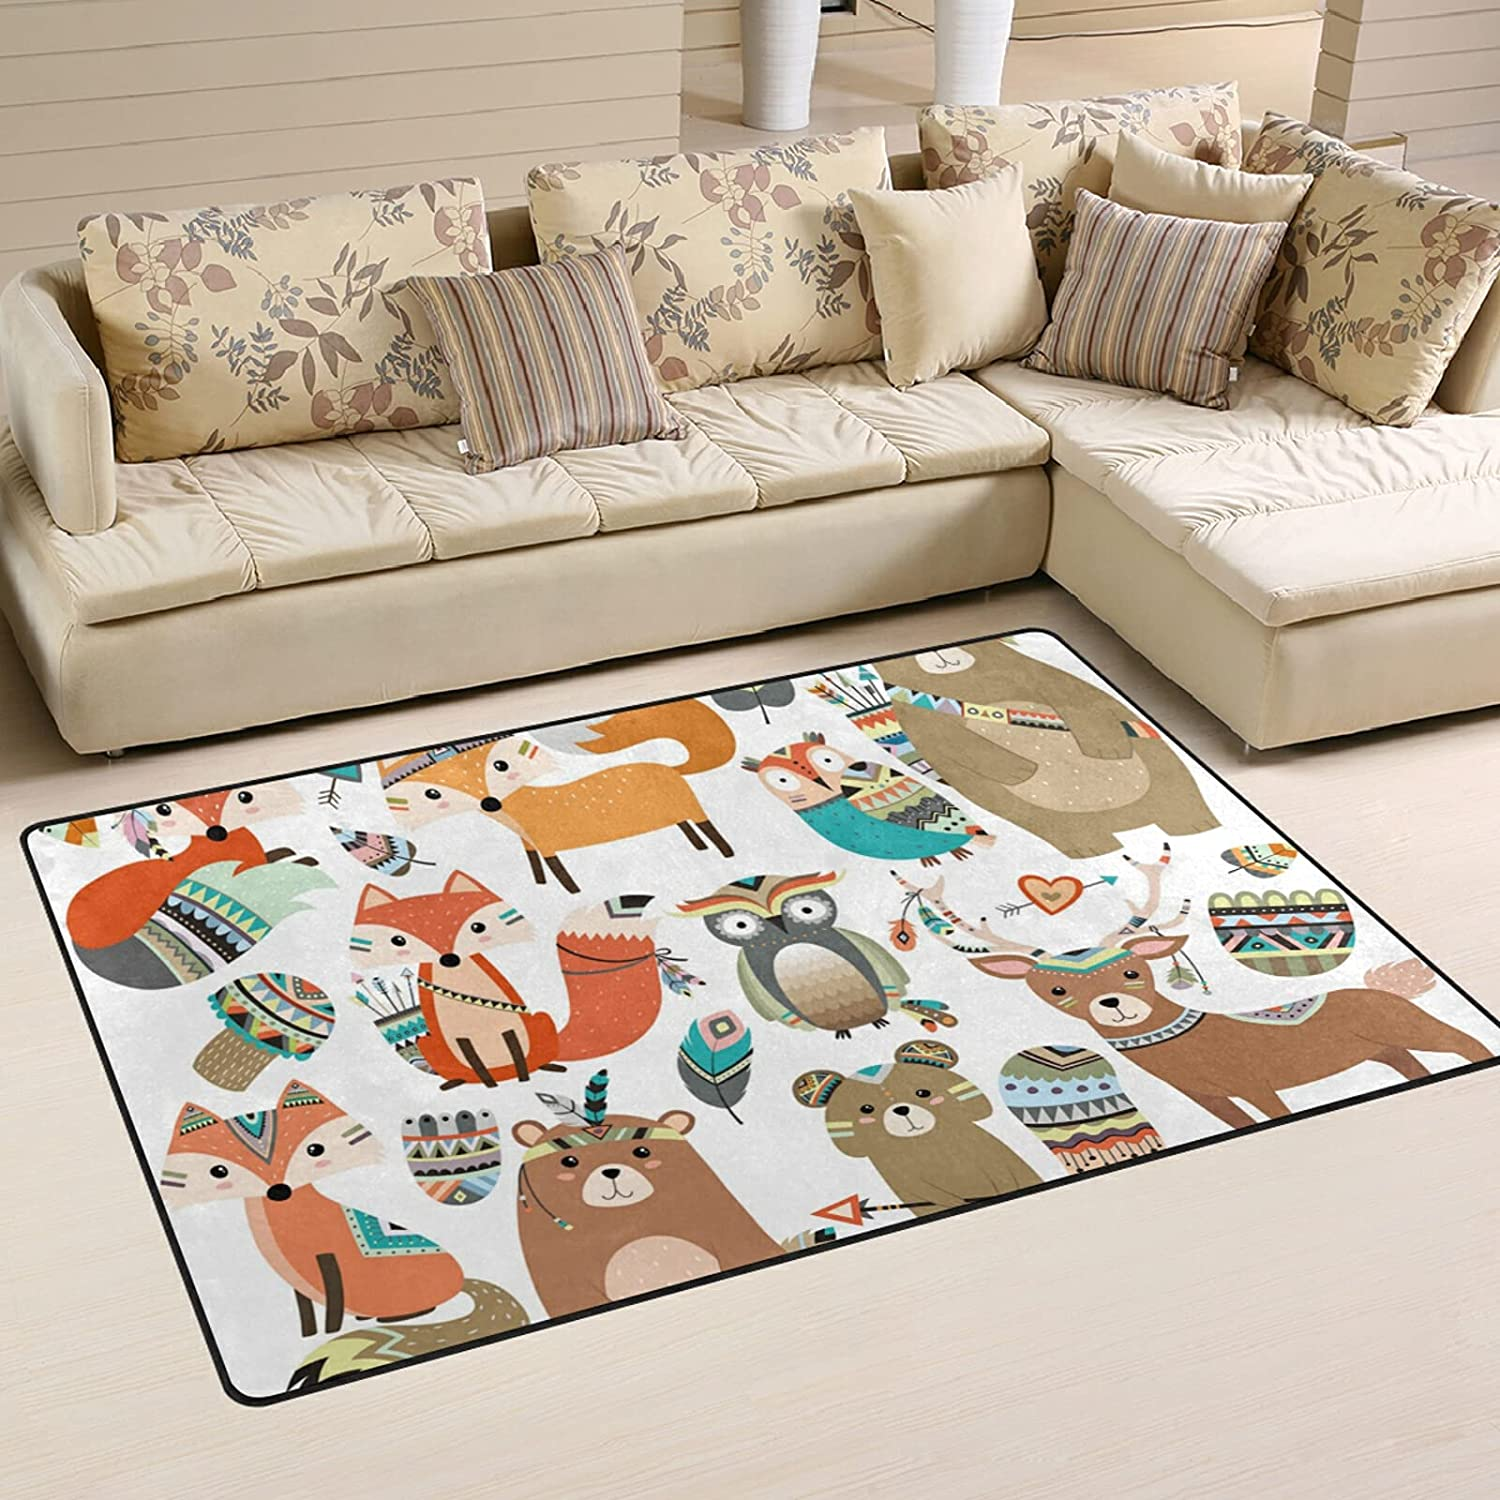 Tribal Forest Woodland Animals Luxury goods Large Soft Rugs Area Limited time cheap sale Play Nursery